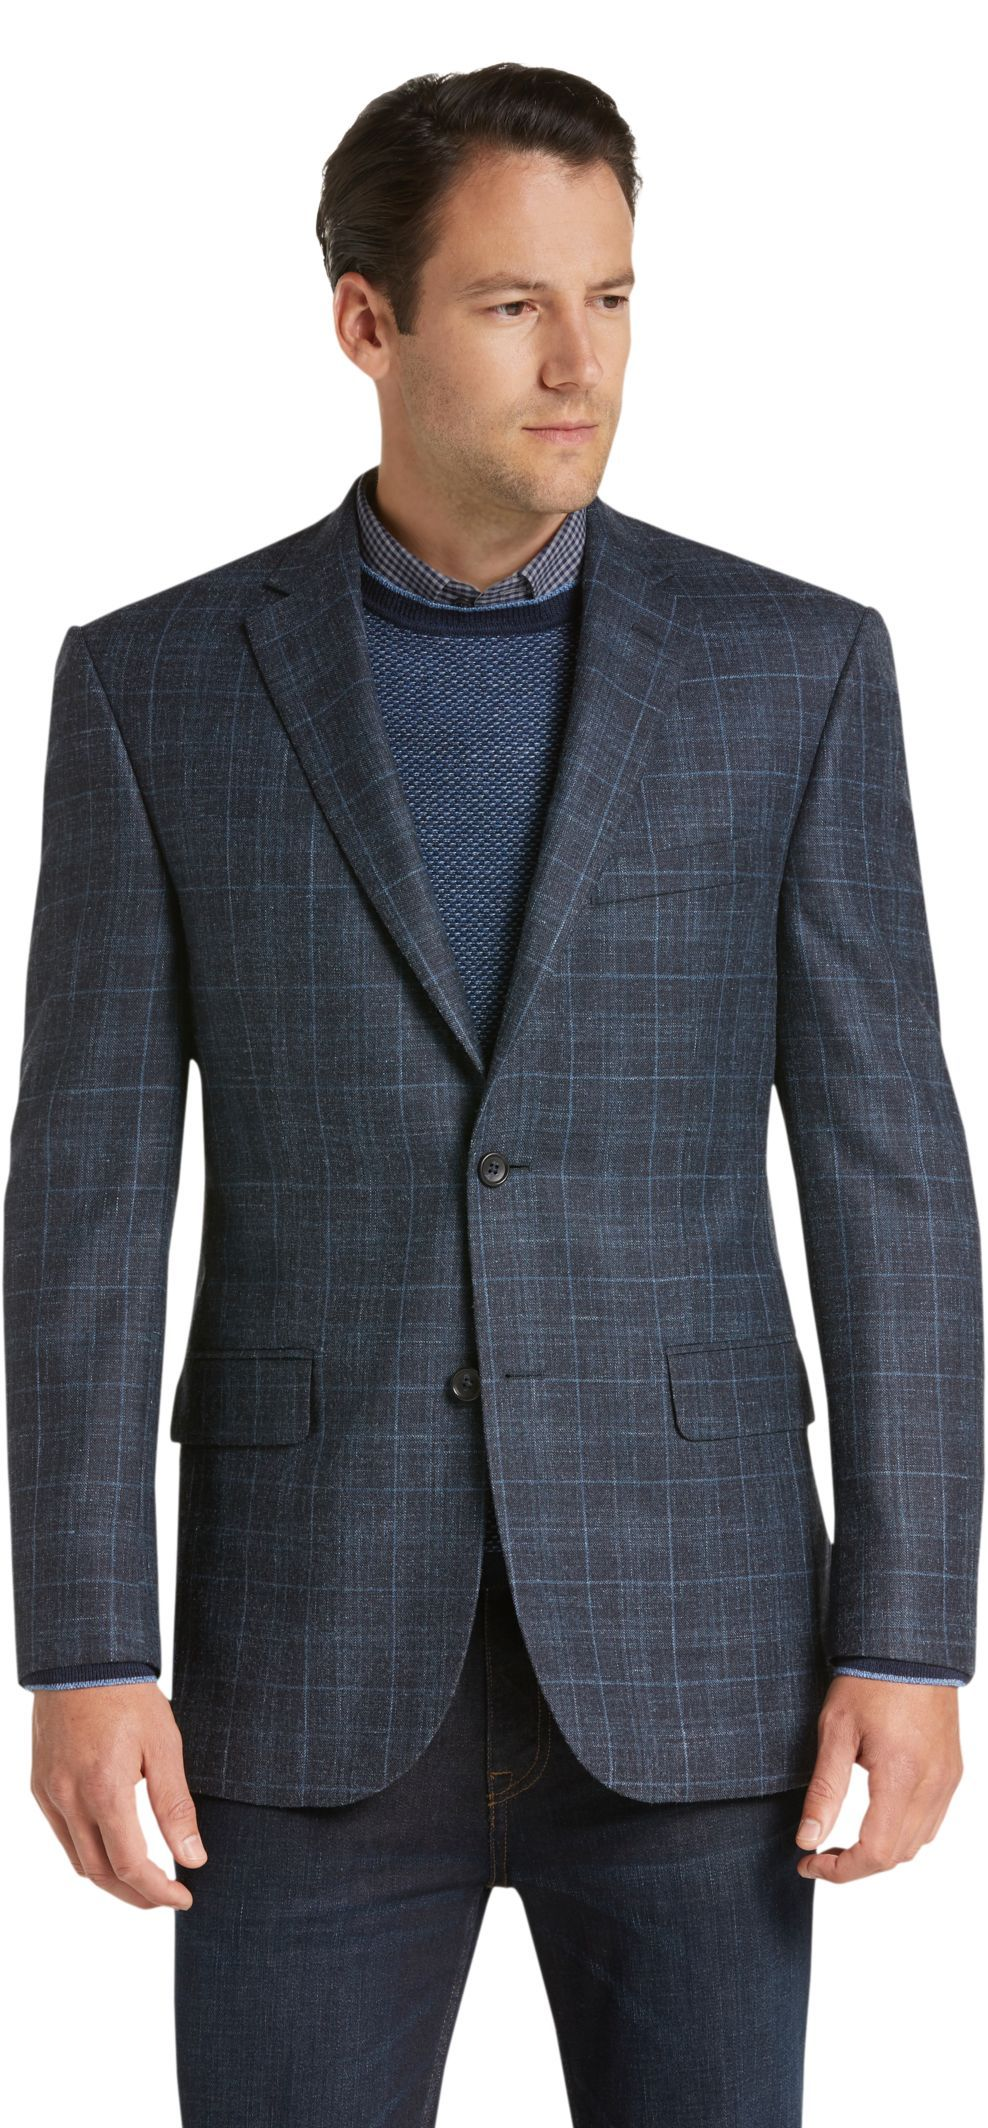 Signature Collection Tailored Fit Windowpane Plaid Sportcoat